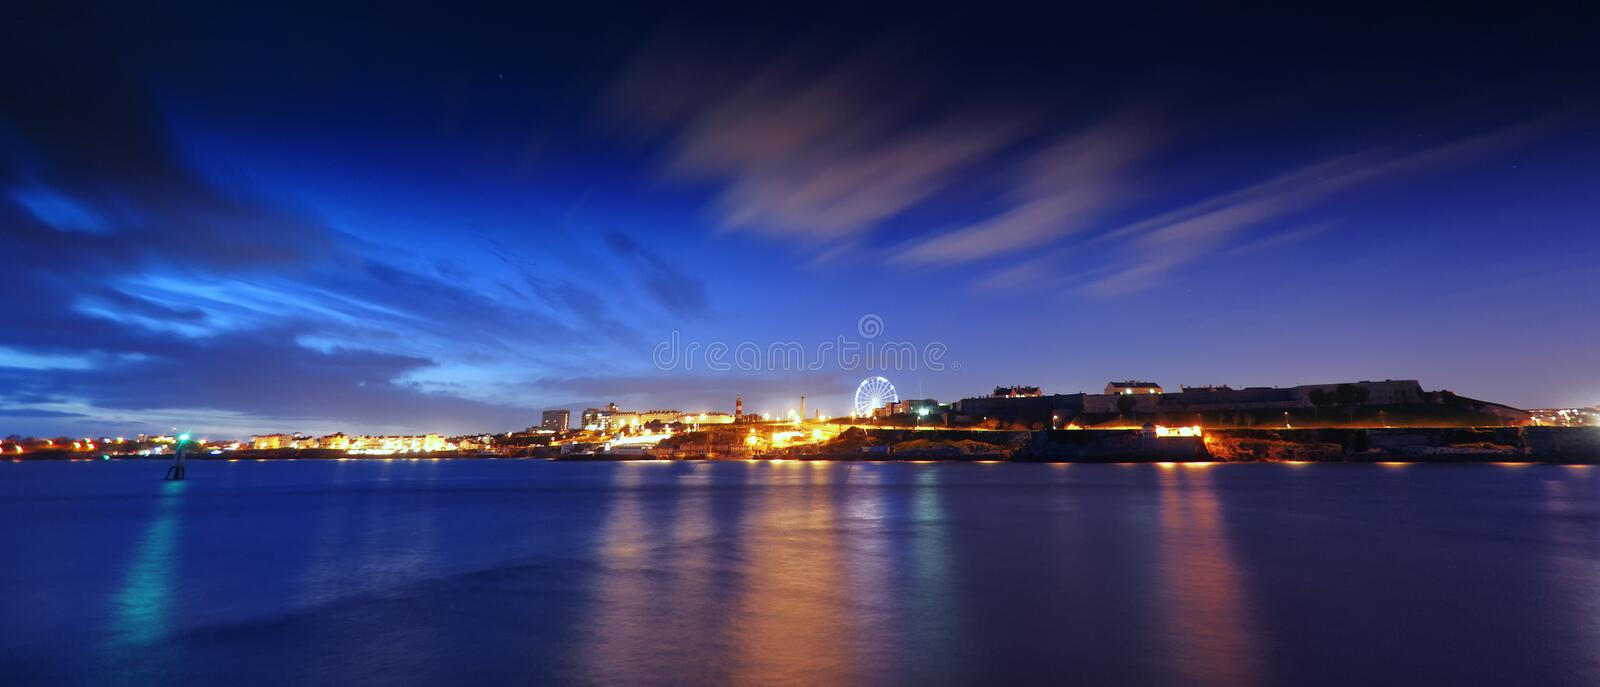 Plymouth Sound. The Hoe, Plymouth Sound, UK stock image